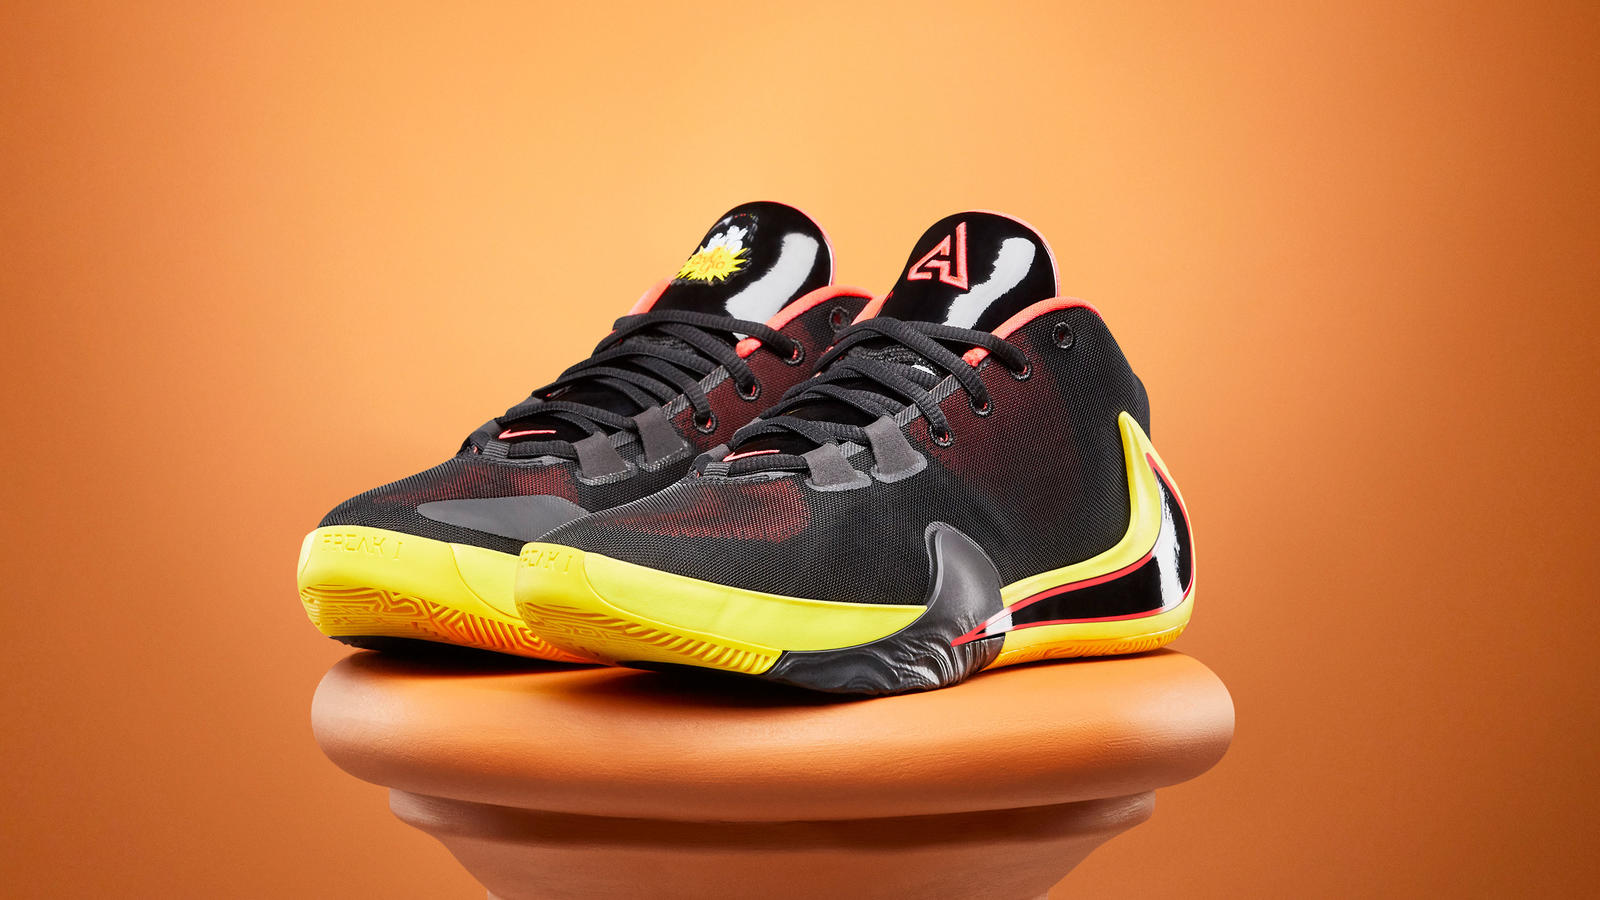 Nike Air Zoom Freak 1 Soul Glo Official Images and Release